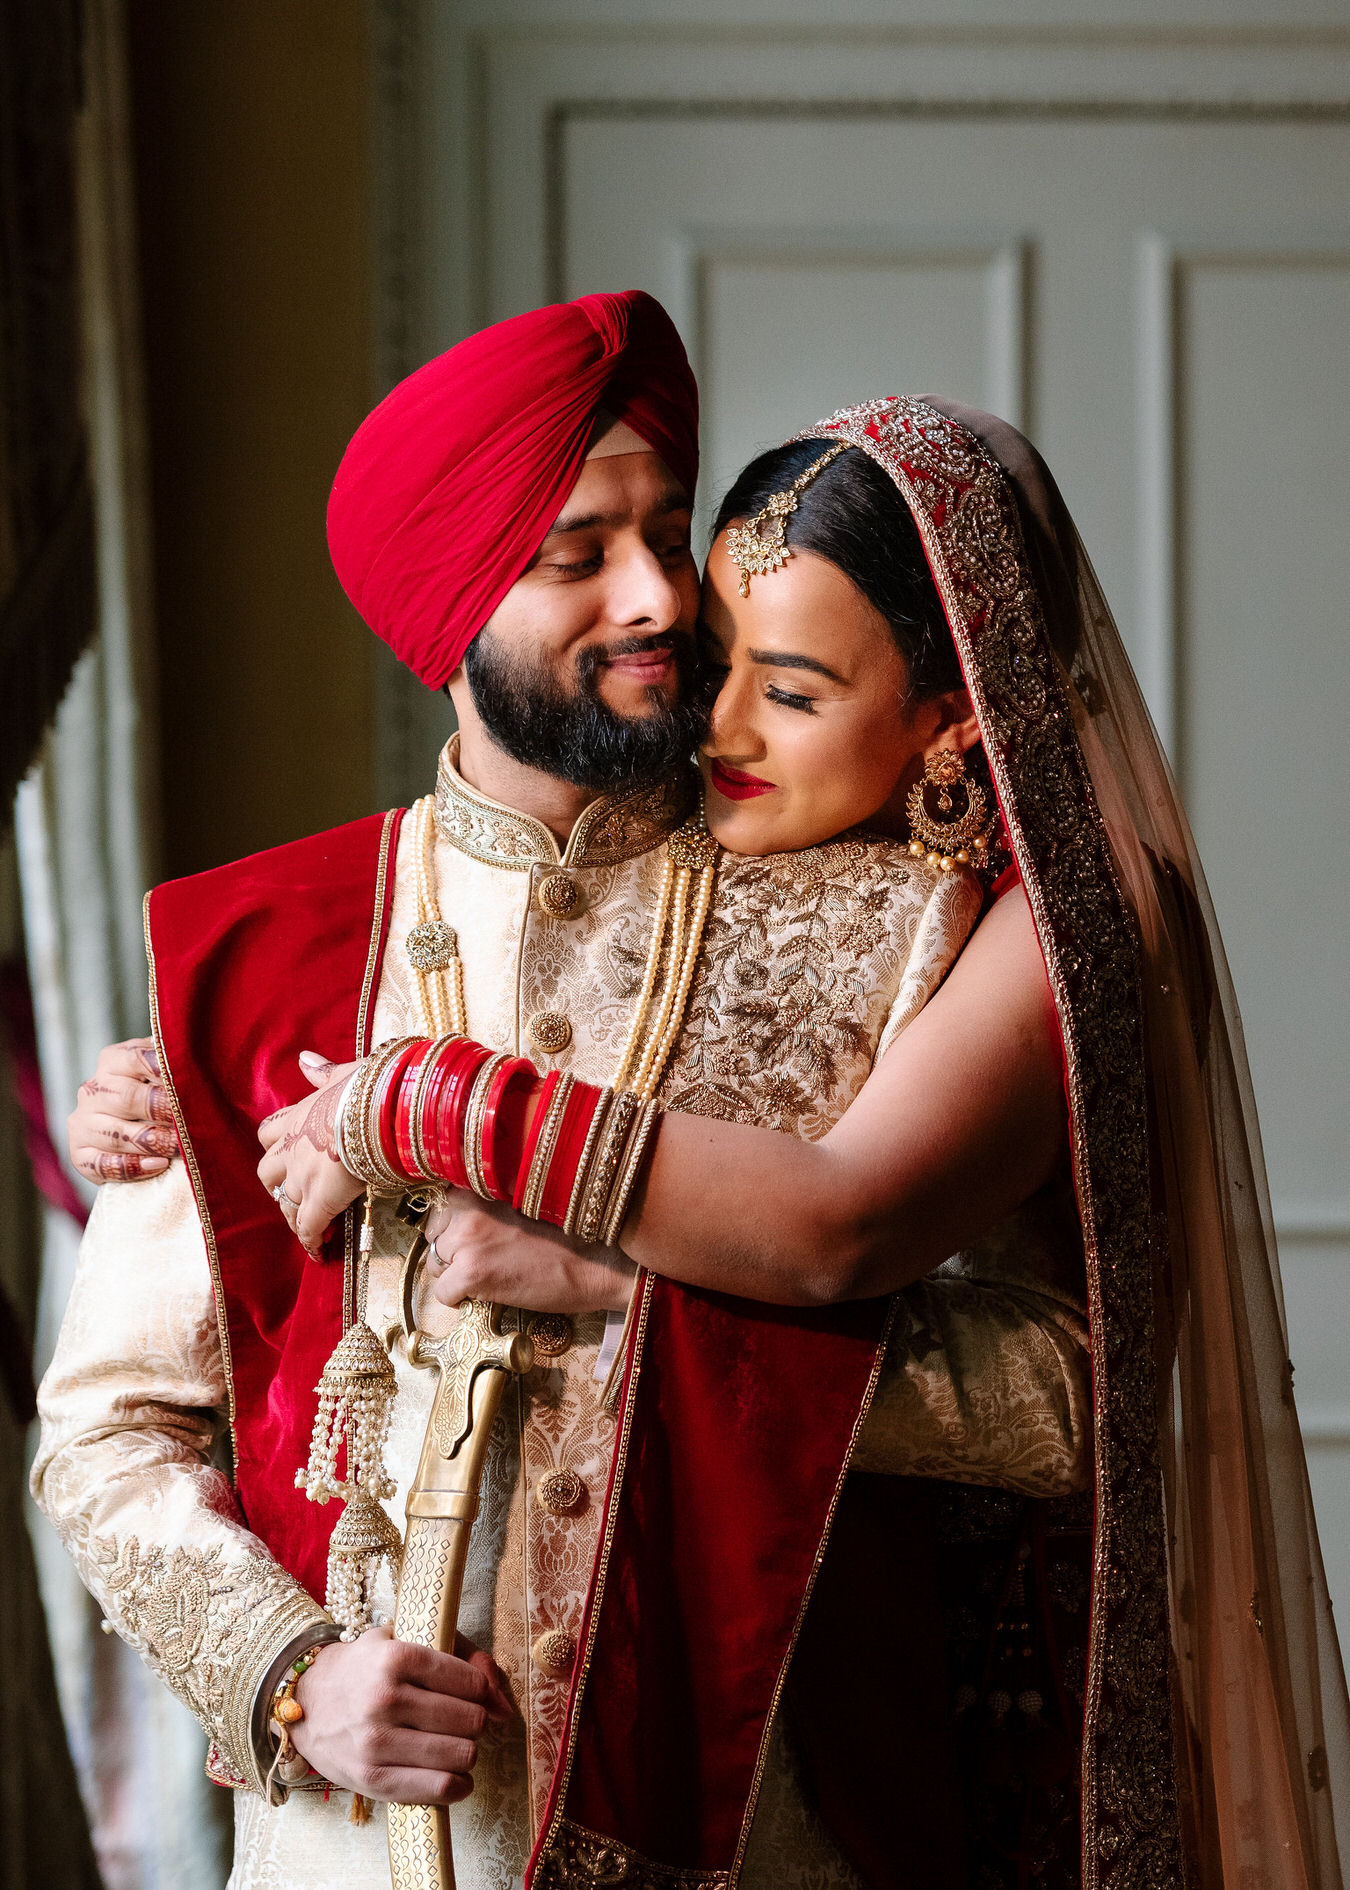 Bride is hugging with a hand the groom from the back laying her chin on his shoulder. Groom has his kirpan in his hand